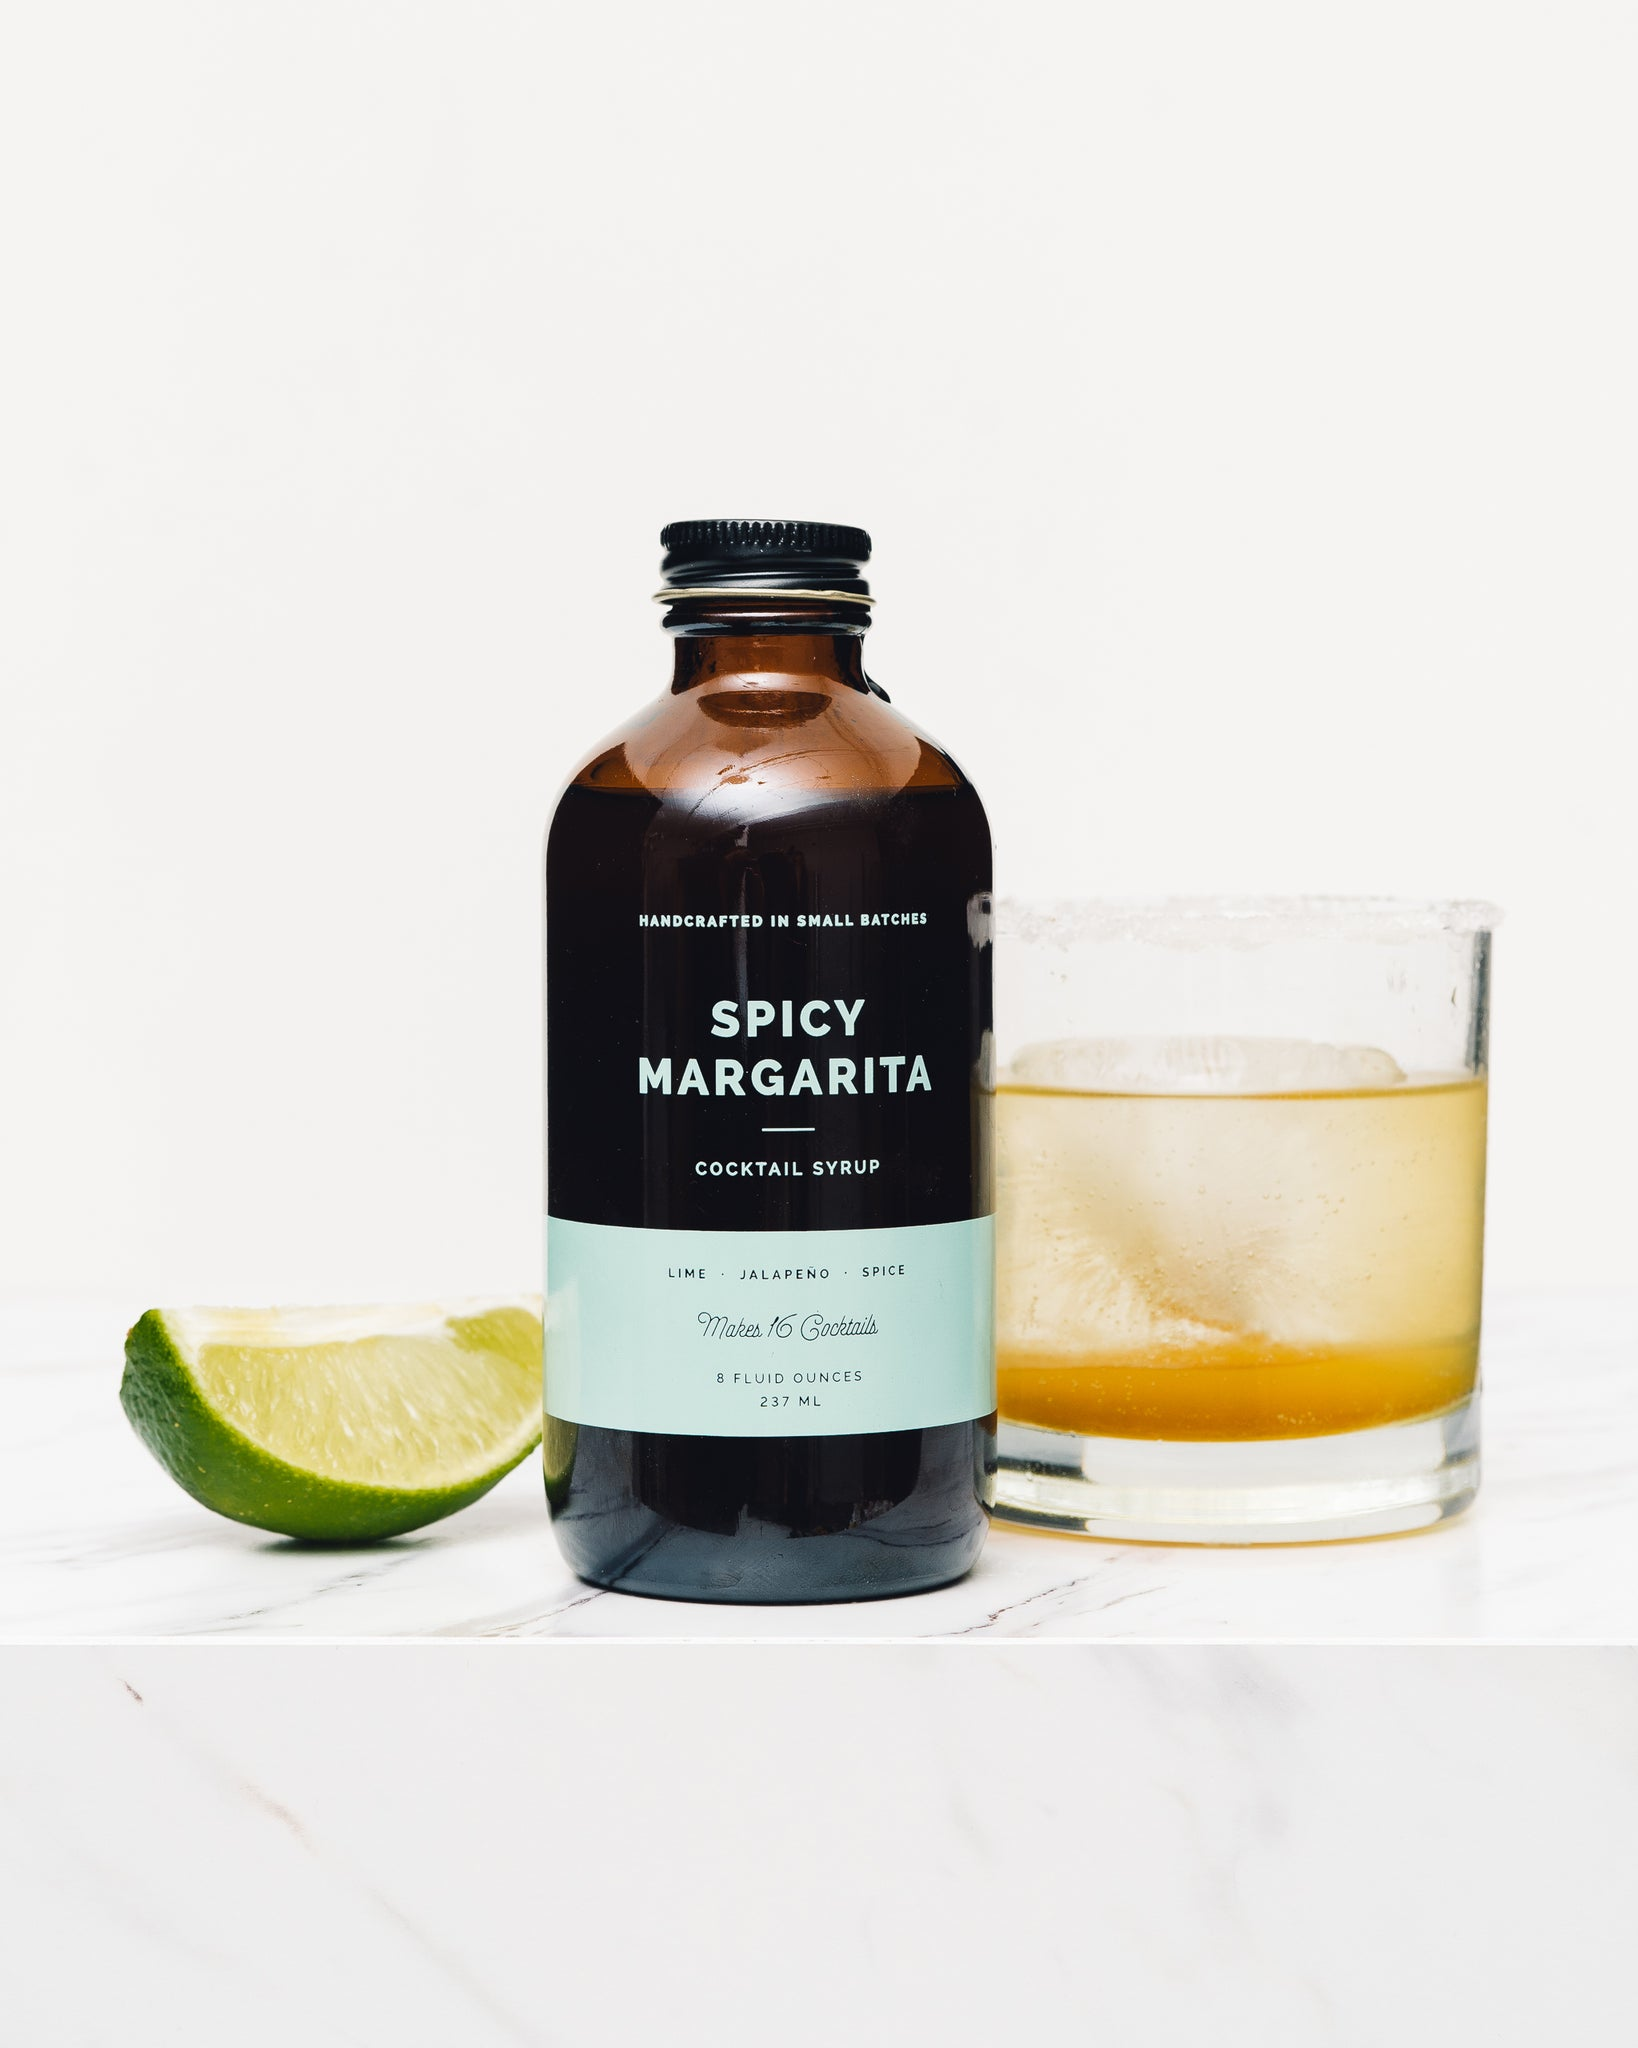 Cocktail Syrup, Spicy Margarita